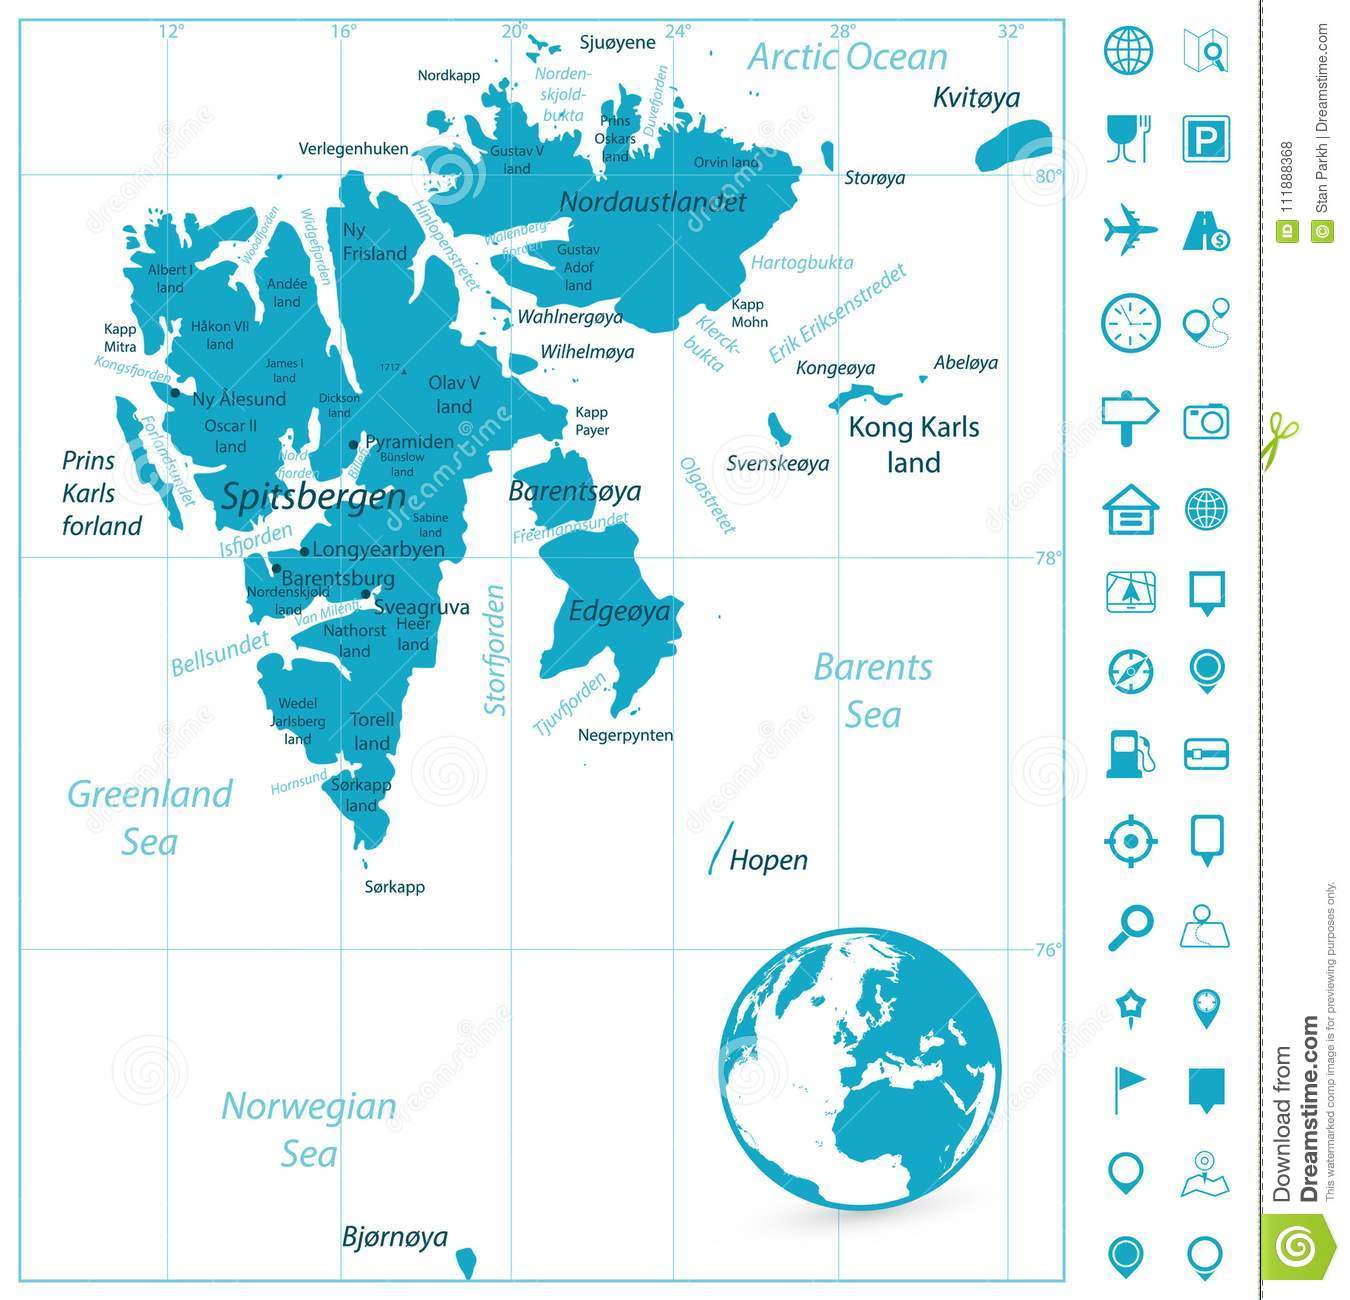 Svalbard Map And Navigation Icons Stock Vector - Illustration of ...